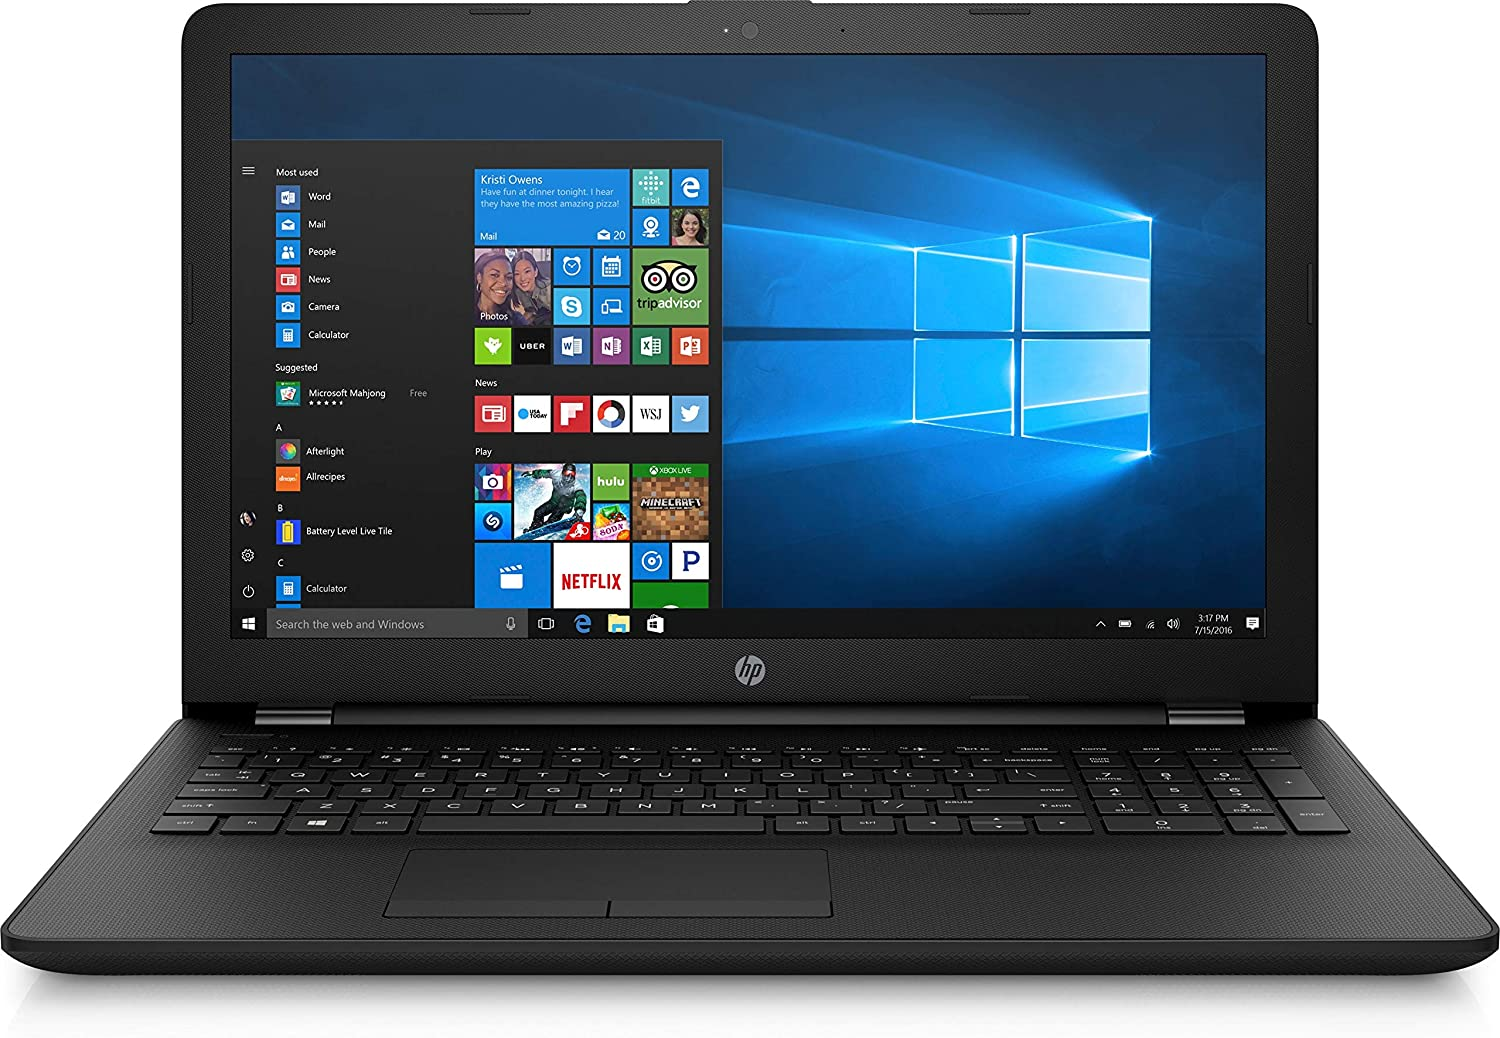 "HP 15.6"" Laptop PC Intel N4000 2.6GHz 4GB RAM 500GB HDD DVD Writer Webcam Bluetooth HDMI Windows 10"